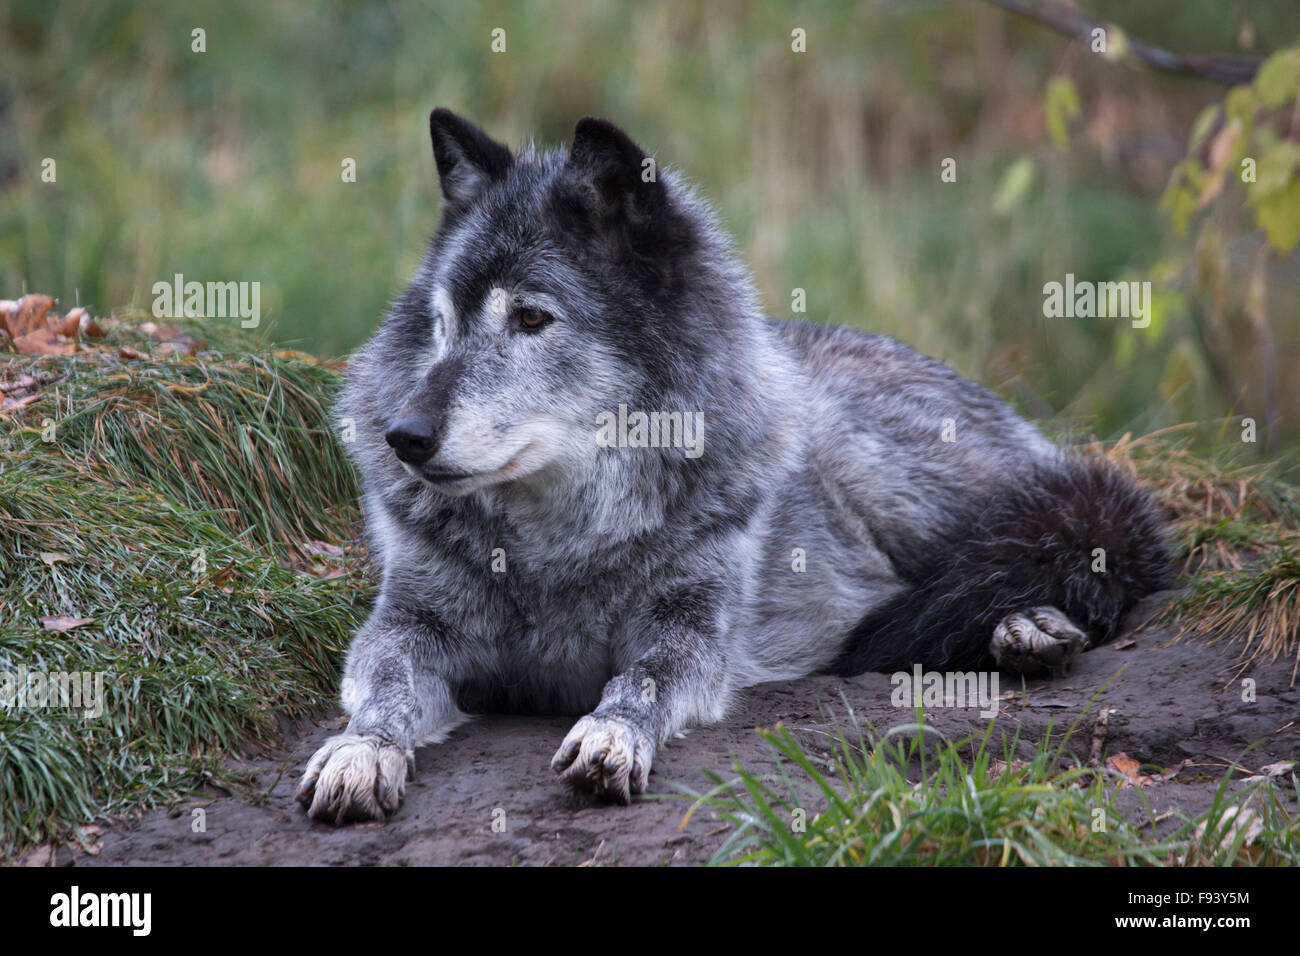 Grey wolf (Canis lupus) in Canadian Wilds zoo exhibit Stock Photo